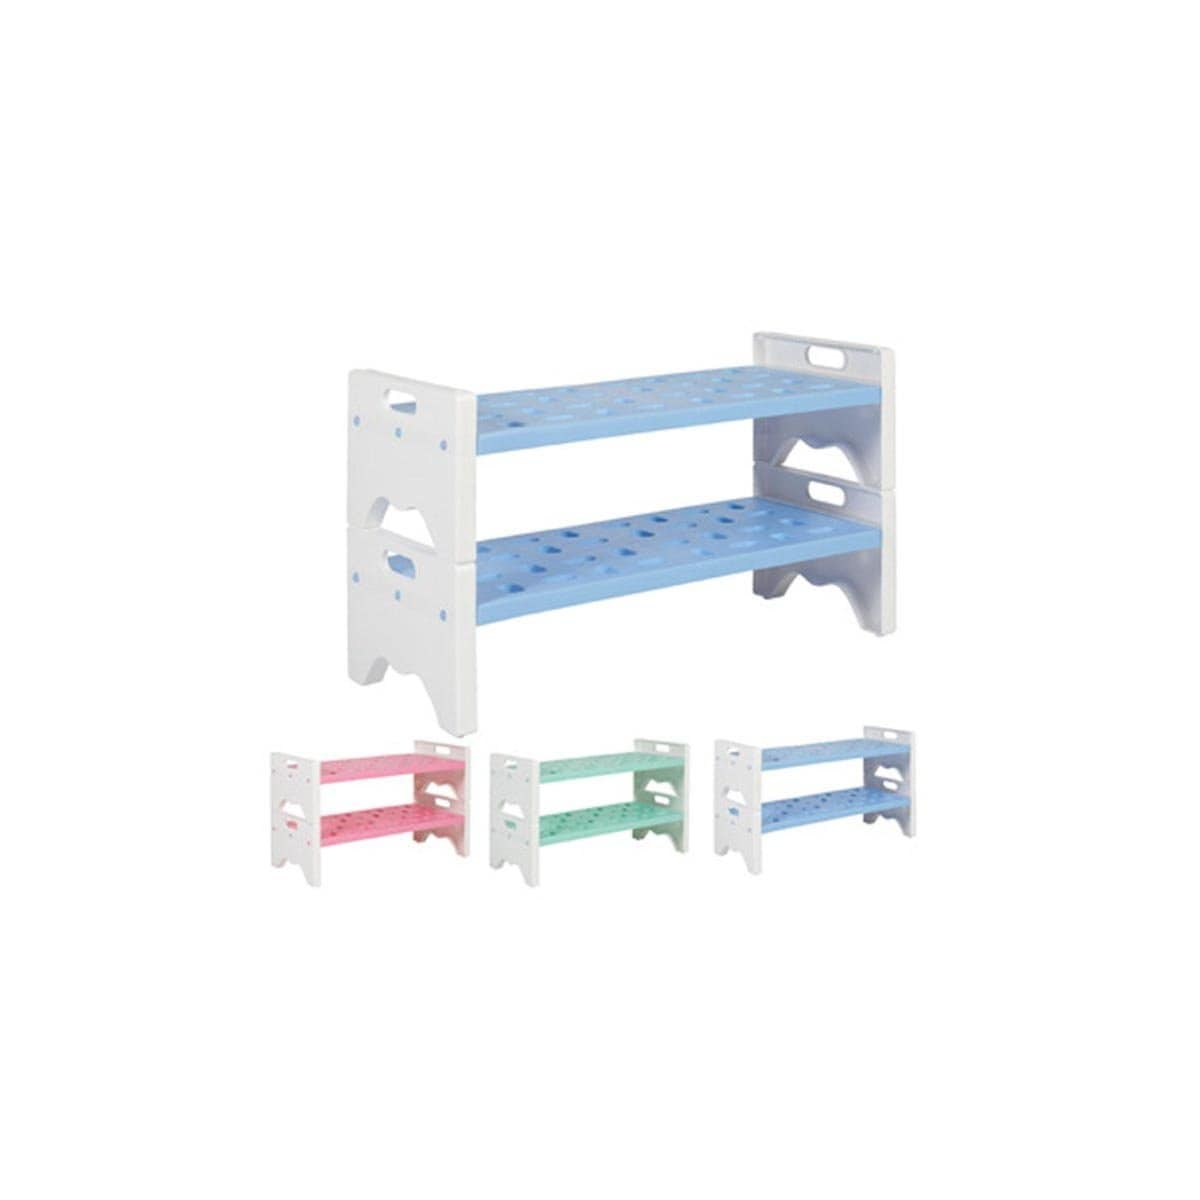 FPSR338 Felton Plastic Shoe Rack 2 Layer